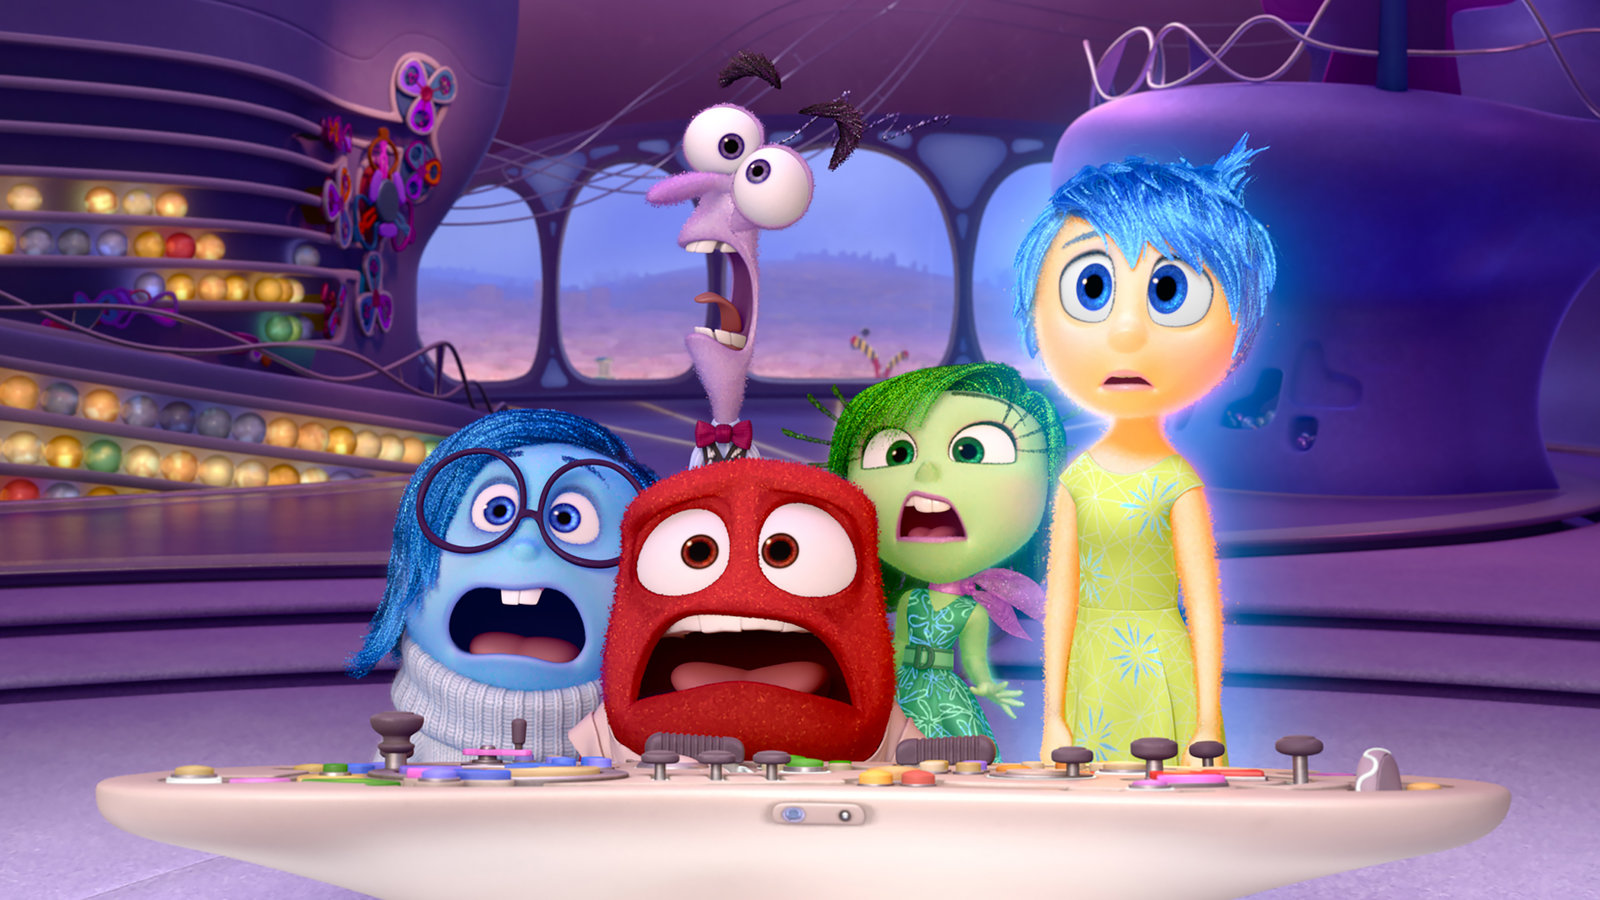 5. 'Inside Out' (2015)